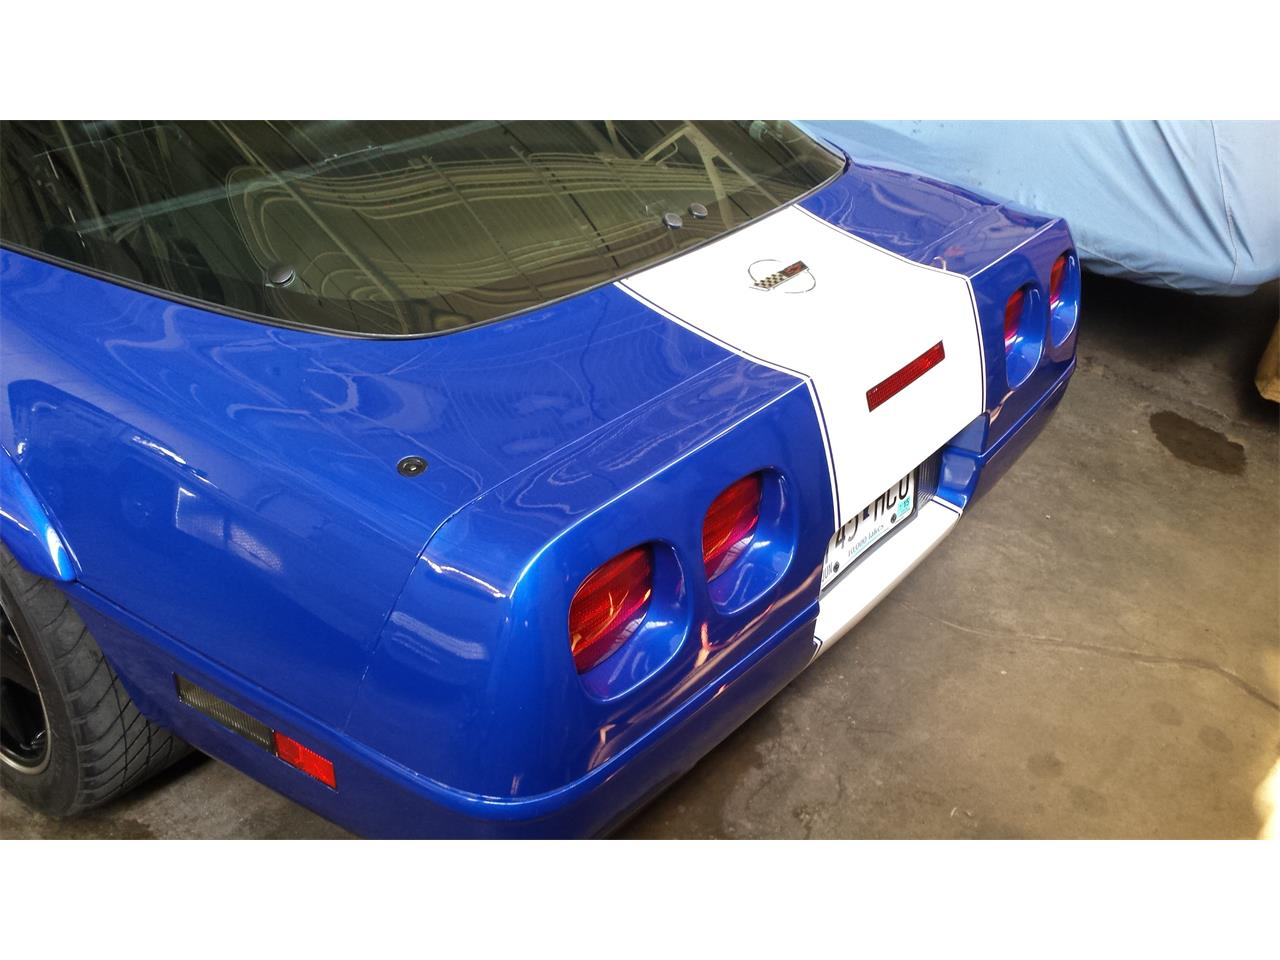 Large Picture of 1996 Chevrolet Corvette located in Minneapolis Minnesota - $36,000.00 Offered by a Private Seller - MXIW